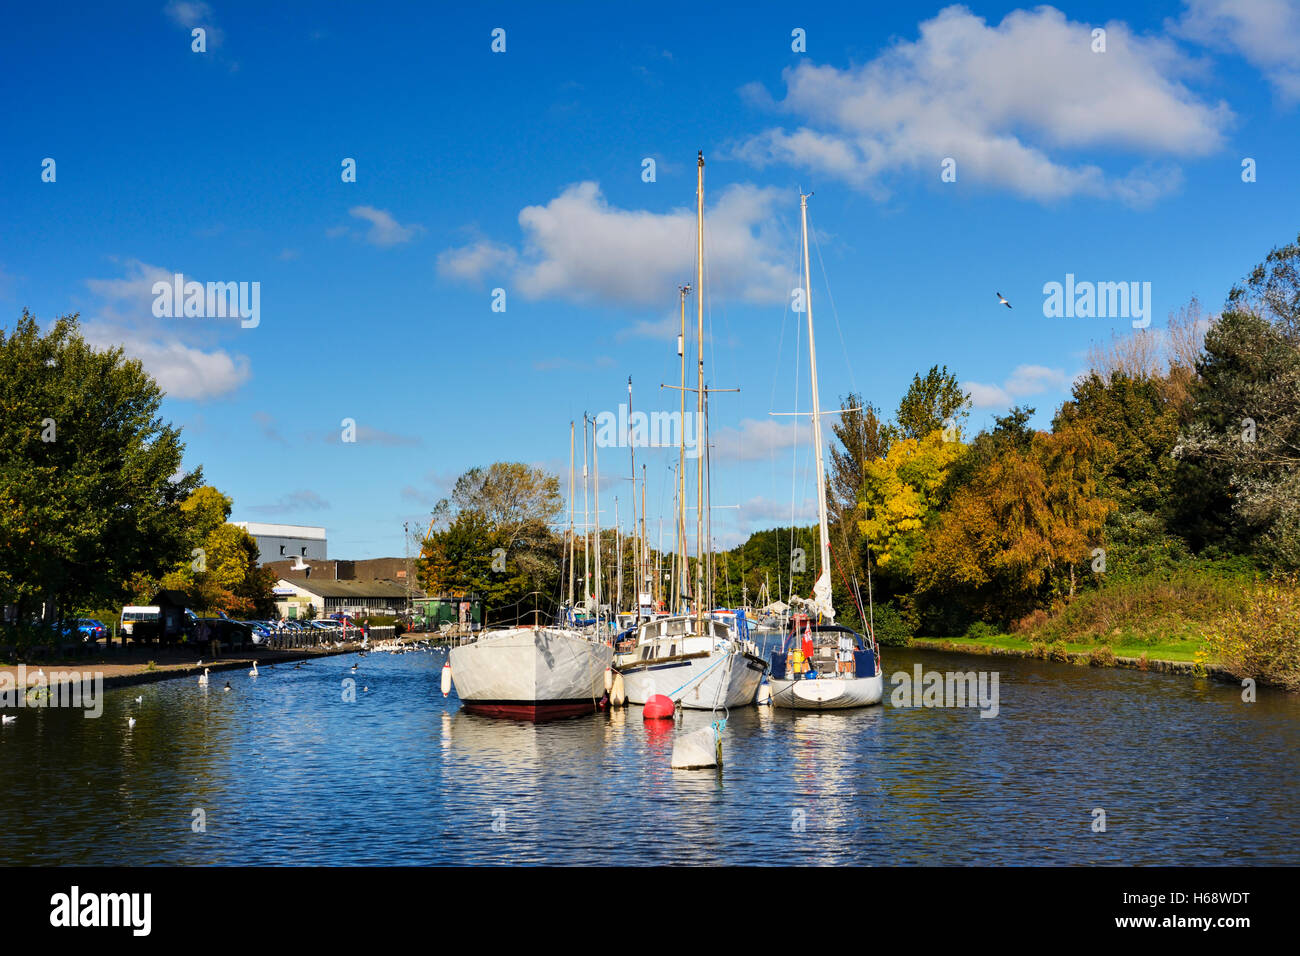 Sailing boats moored on the St Helens canal close to the River Mersey in West Bank, Widnes. - Stock Image